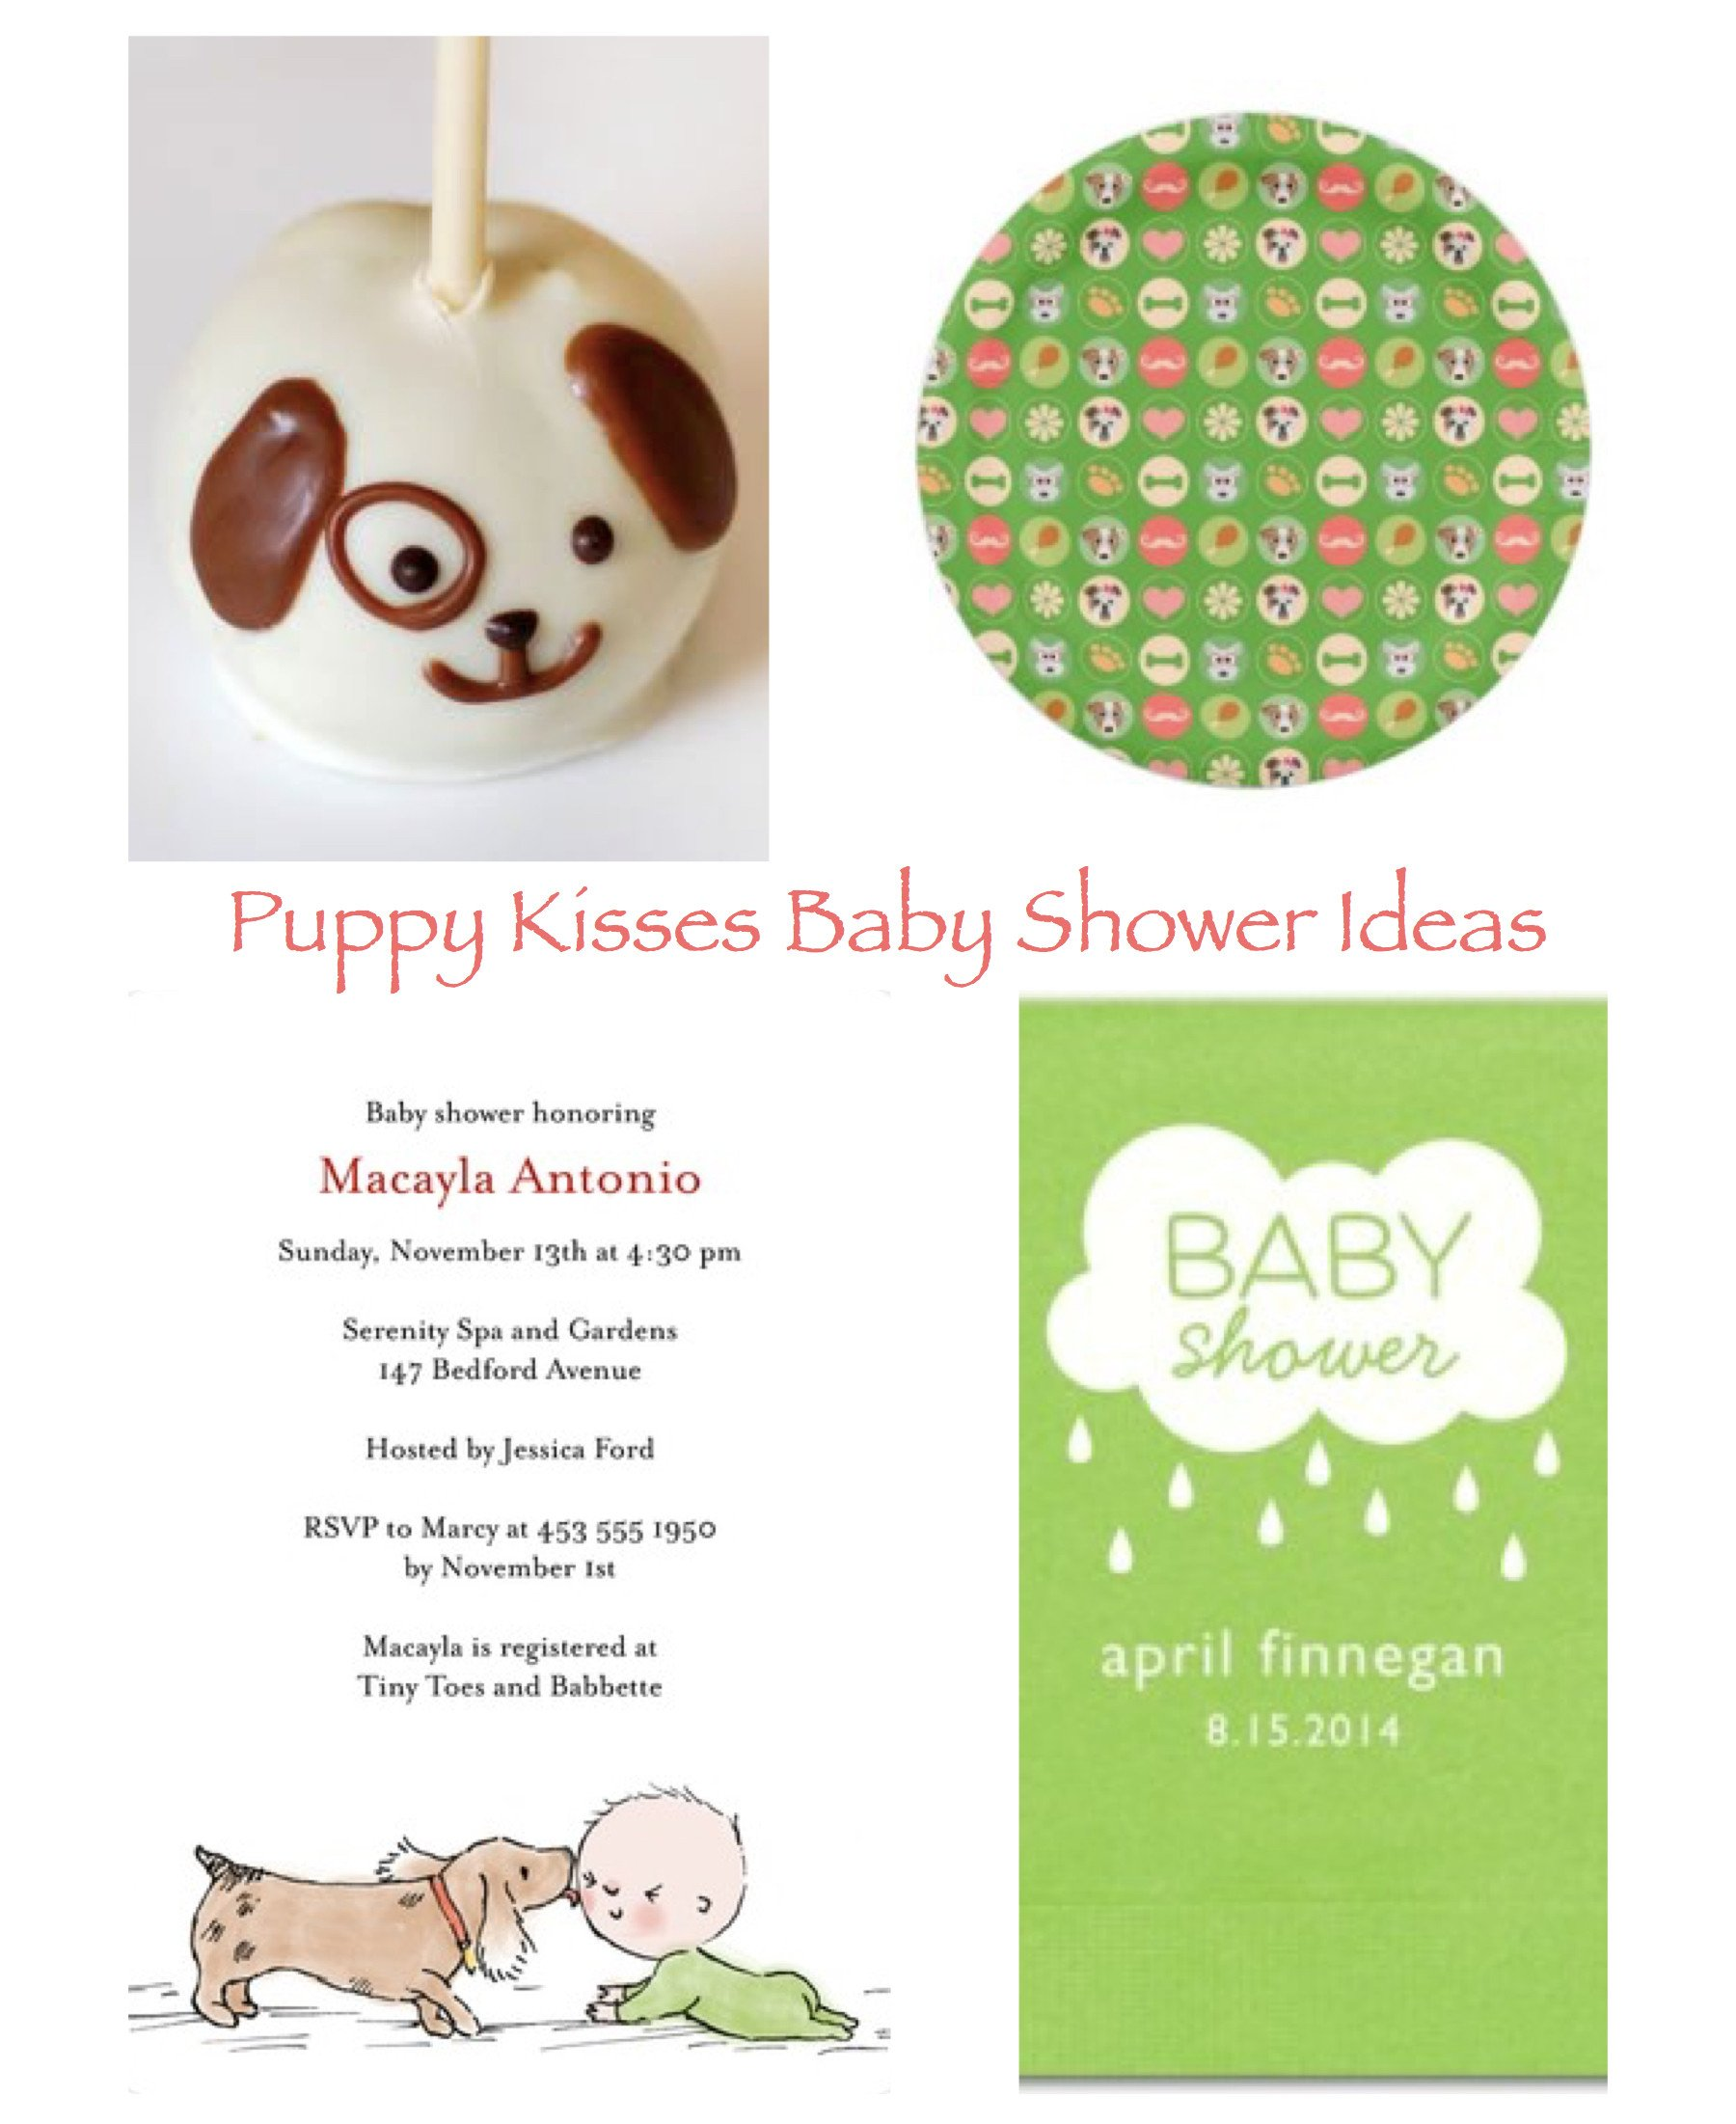 Puppy Kisses Baby Shower Ideas